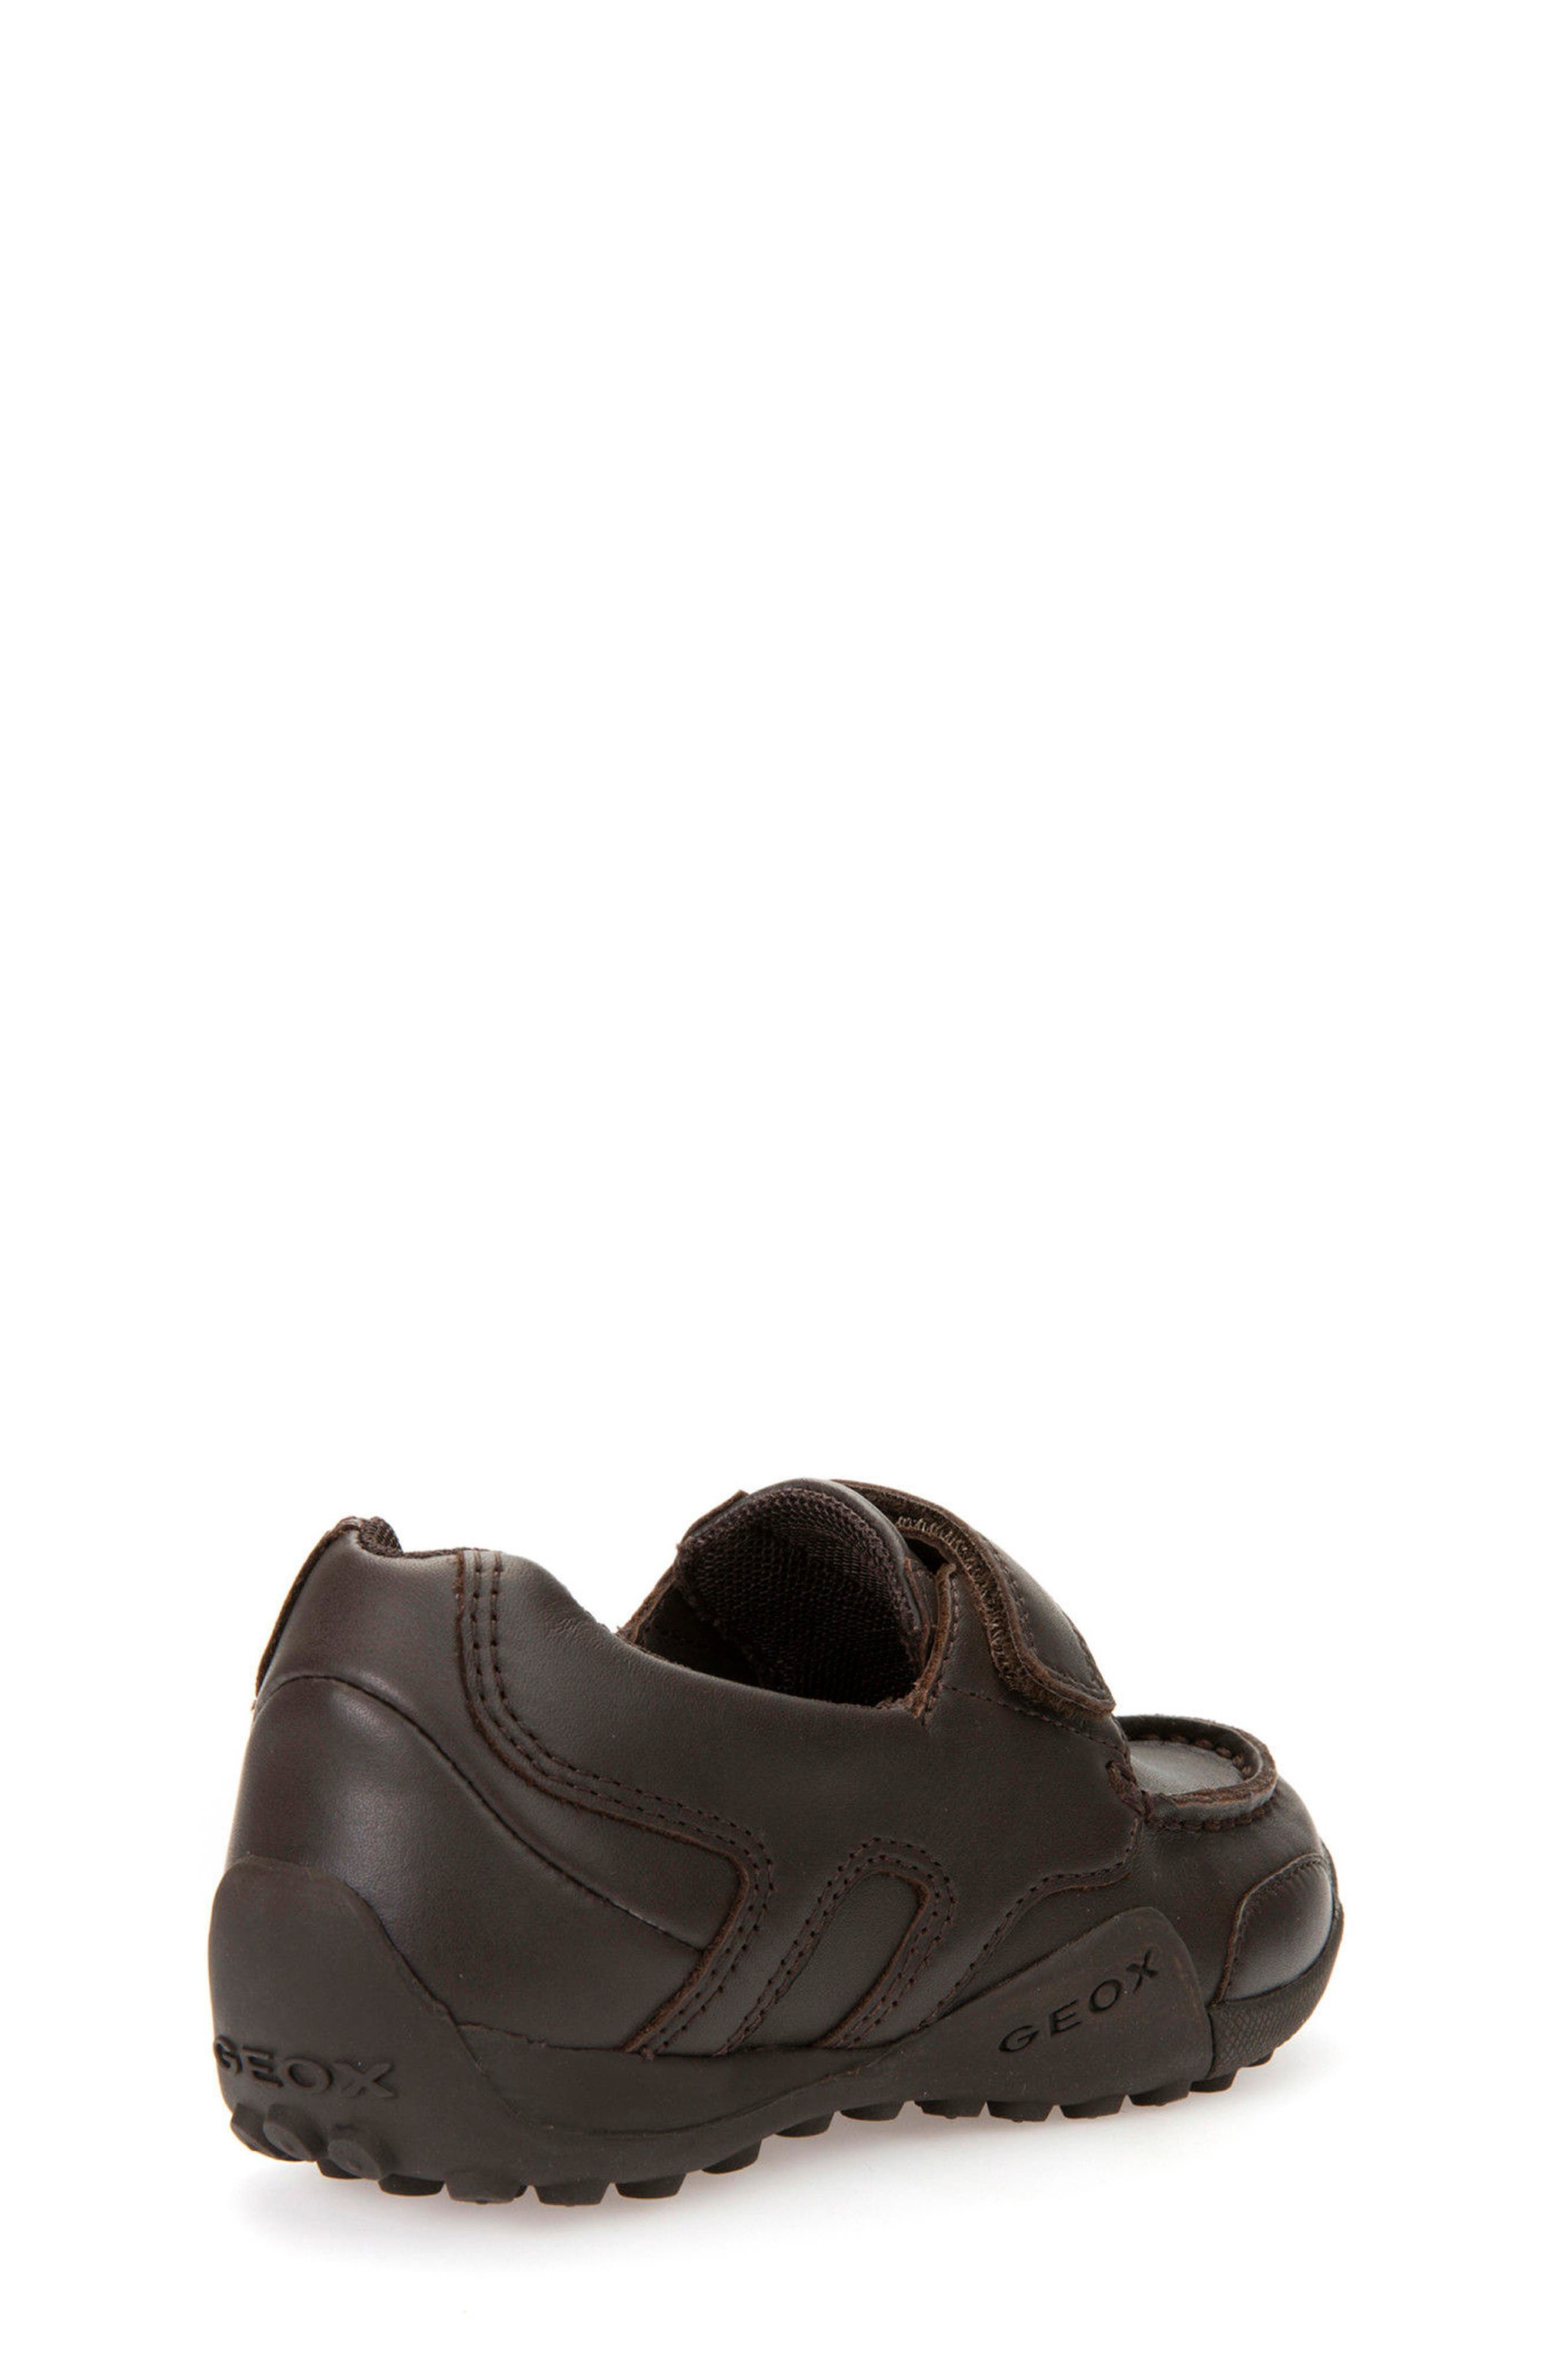 'Snake Moc 2' Leather Loafer,                             Alternate thumbnail 3, color,                             Coffee